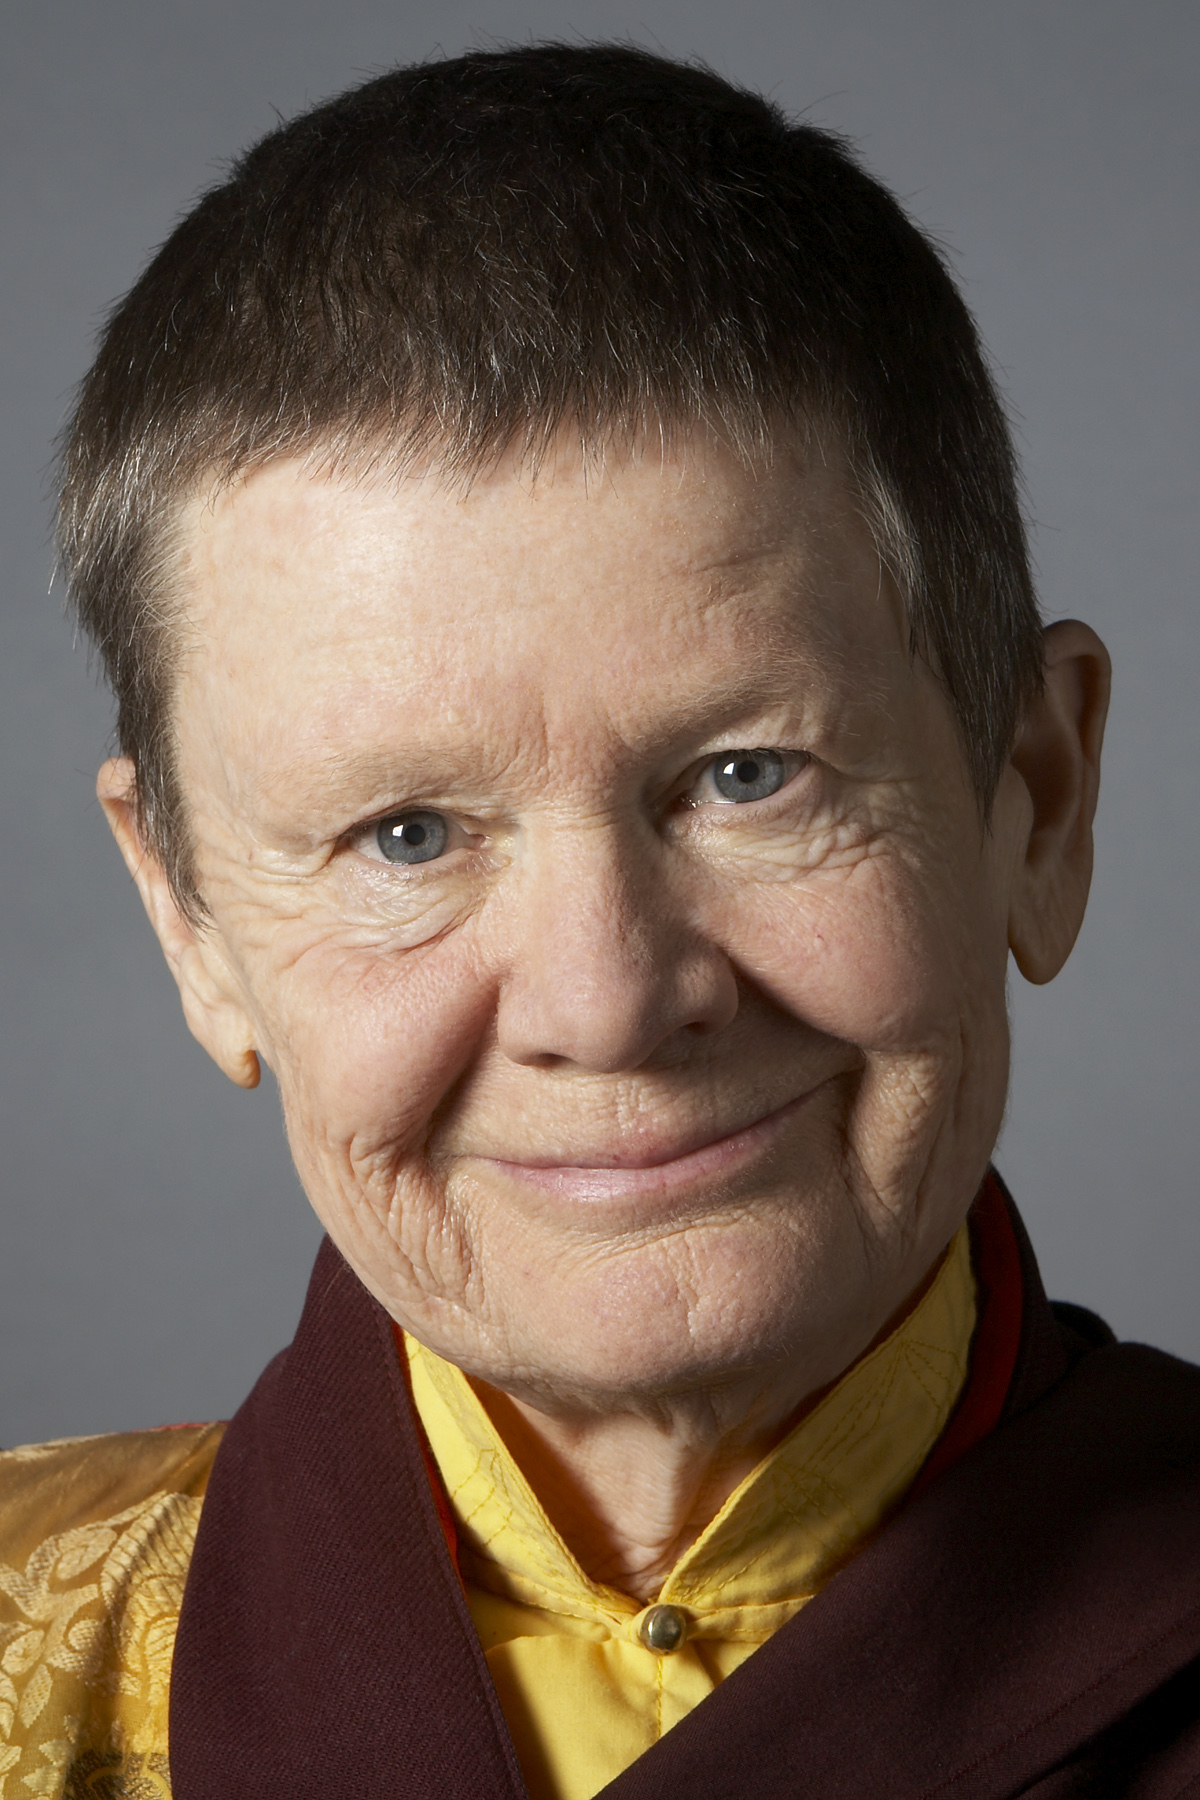 Quotes from Pema Chodron - Motivational Quotes